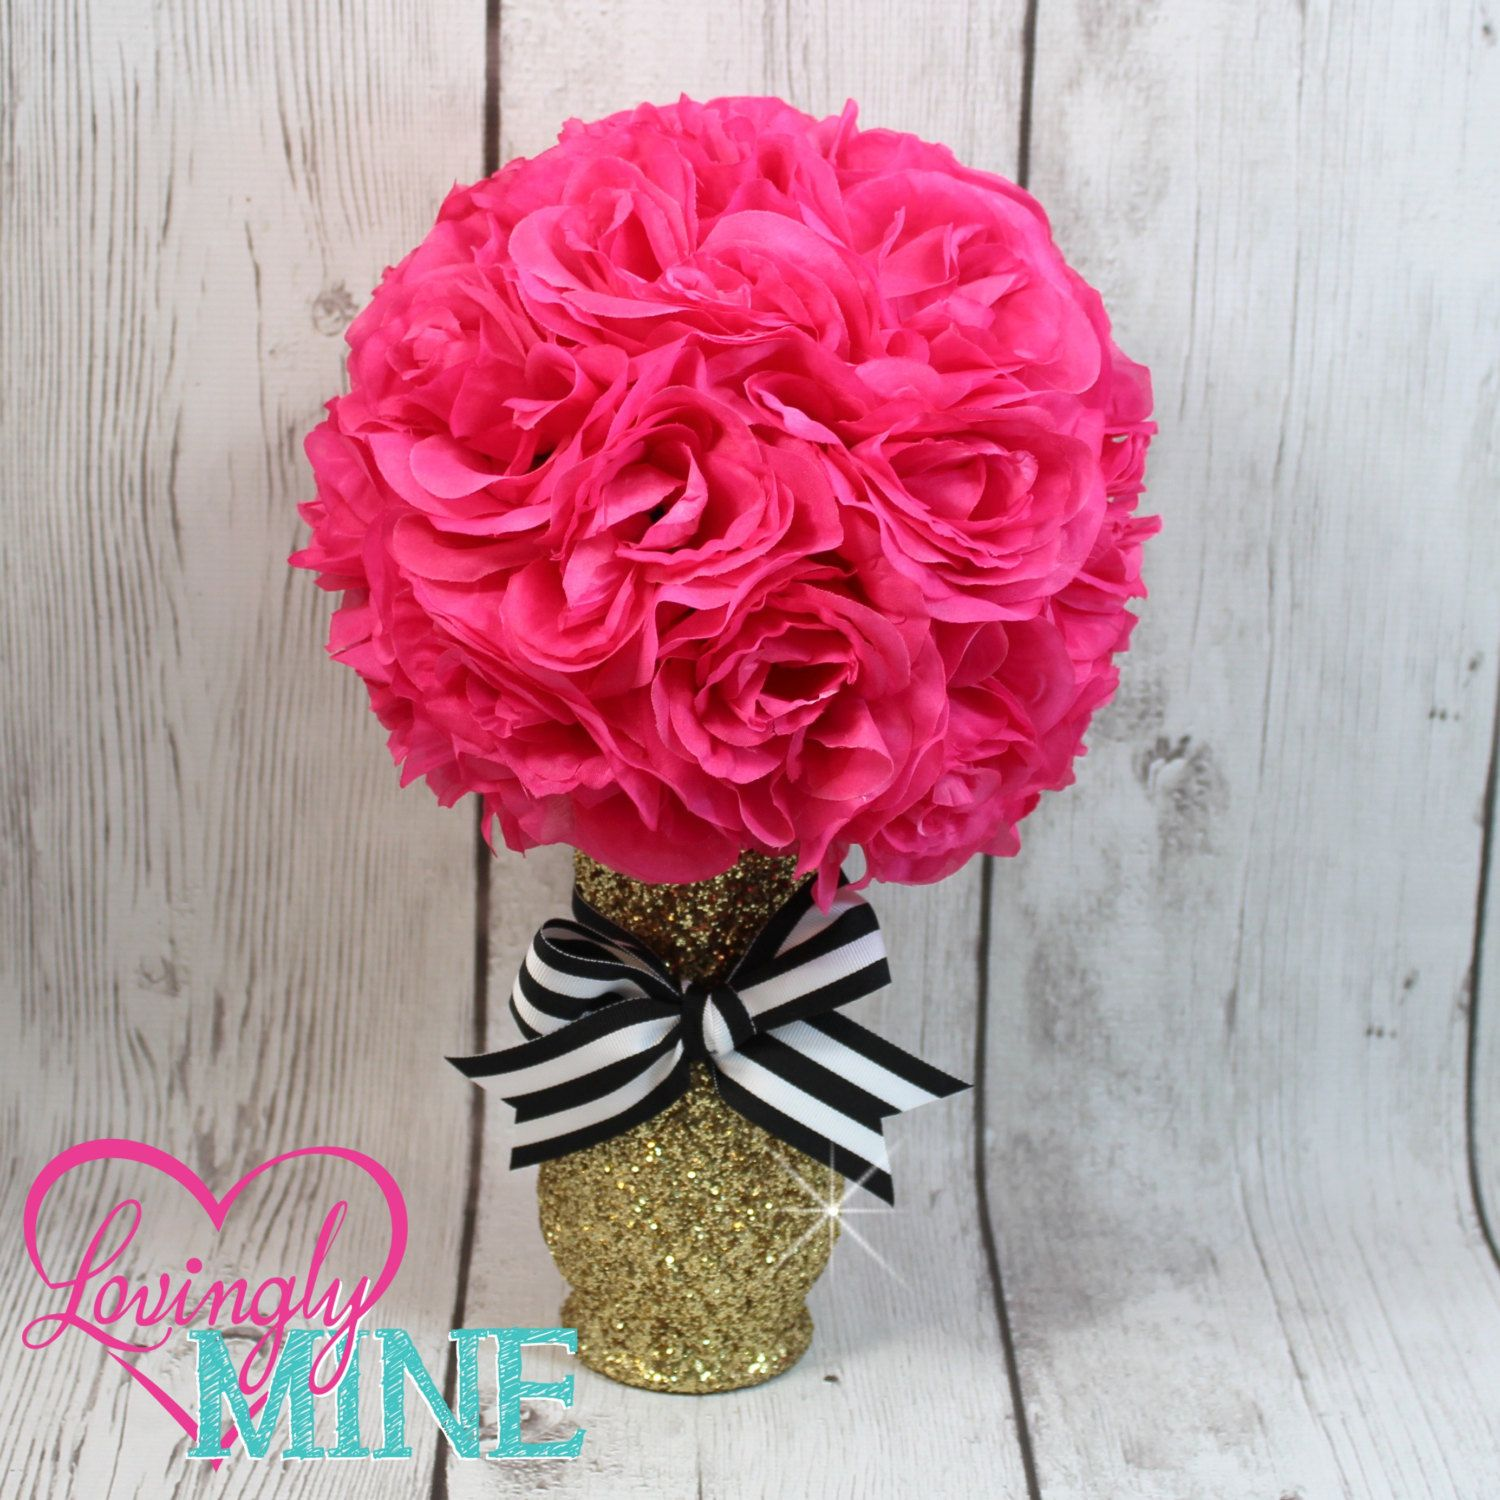 Kate spade inspired centerpiece glitter gold glass vase